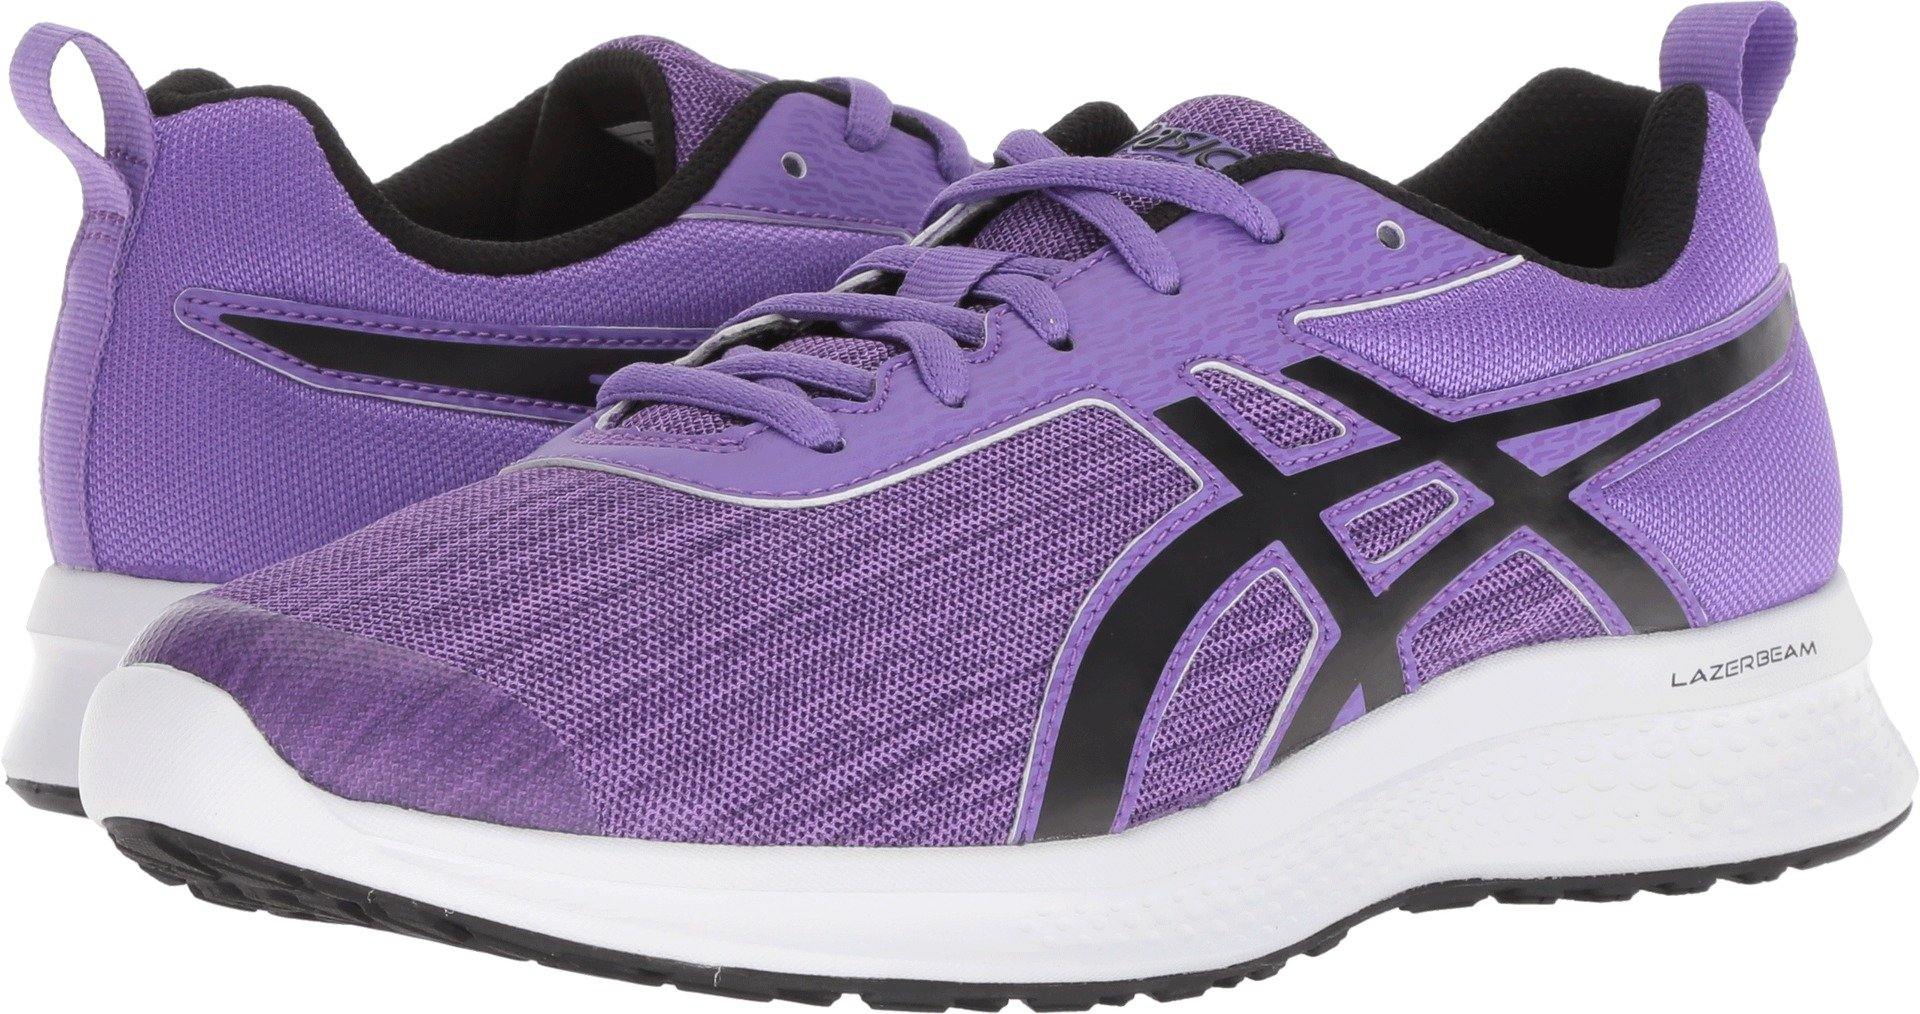 ASICS Kids Girl's Lazerbeam EA (Little Kid/Big Kid) Orchid/Performance Black 1.5 M US Little Kid by ASICS (Image #1)